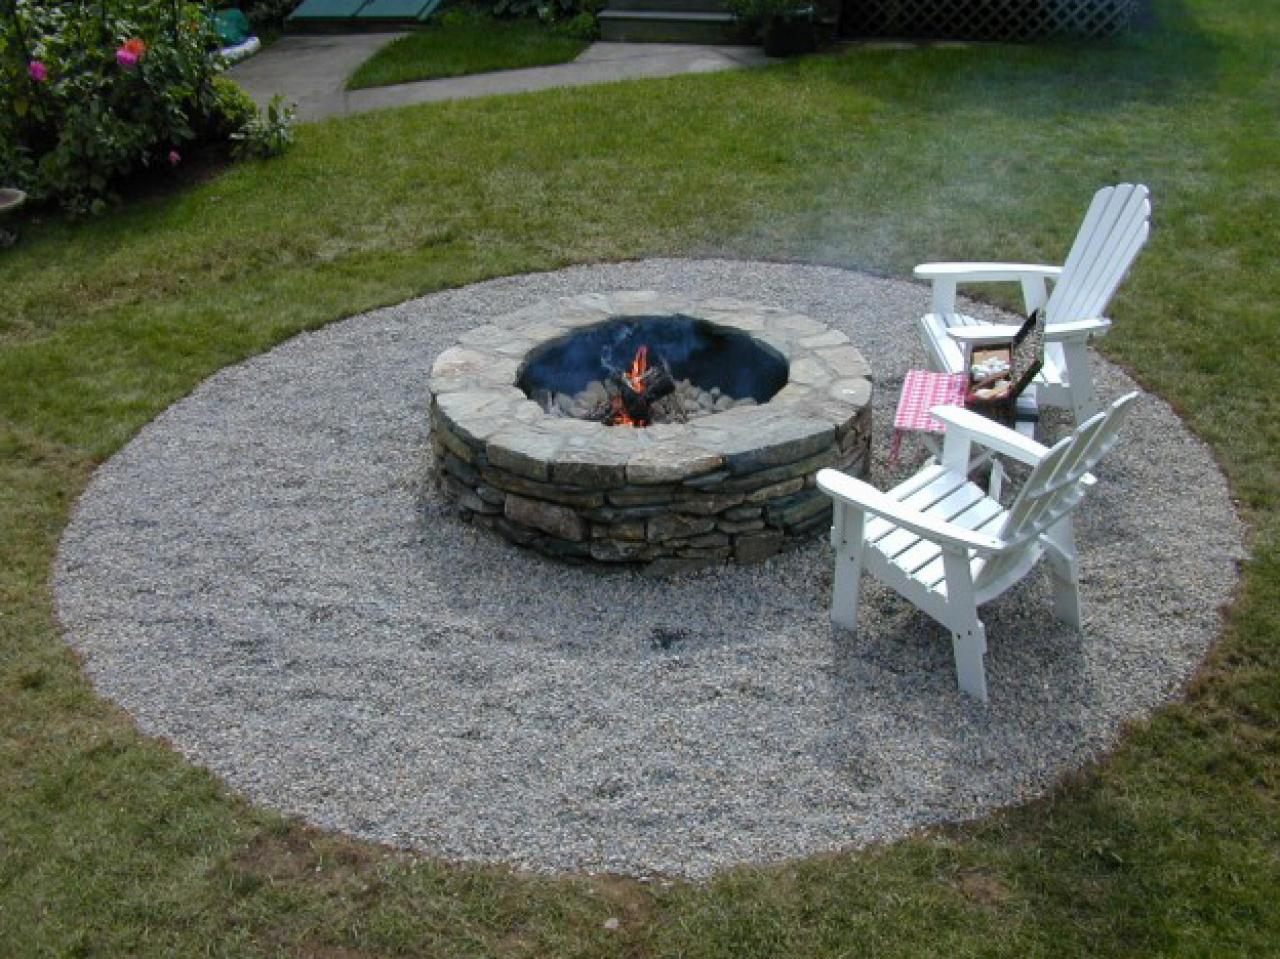 How to Build a Fire Pit - DIY Fire Pit